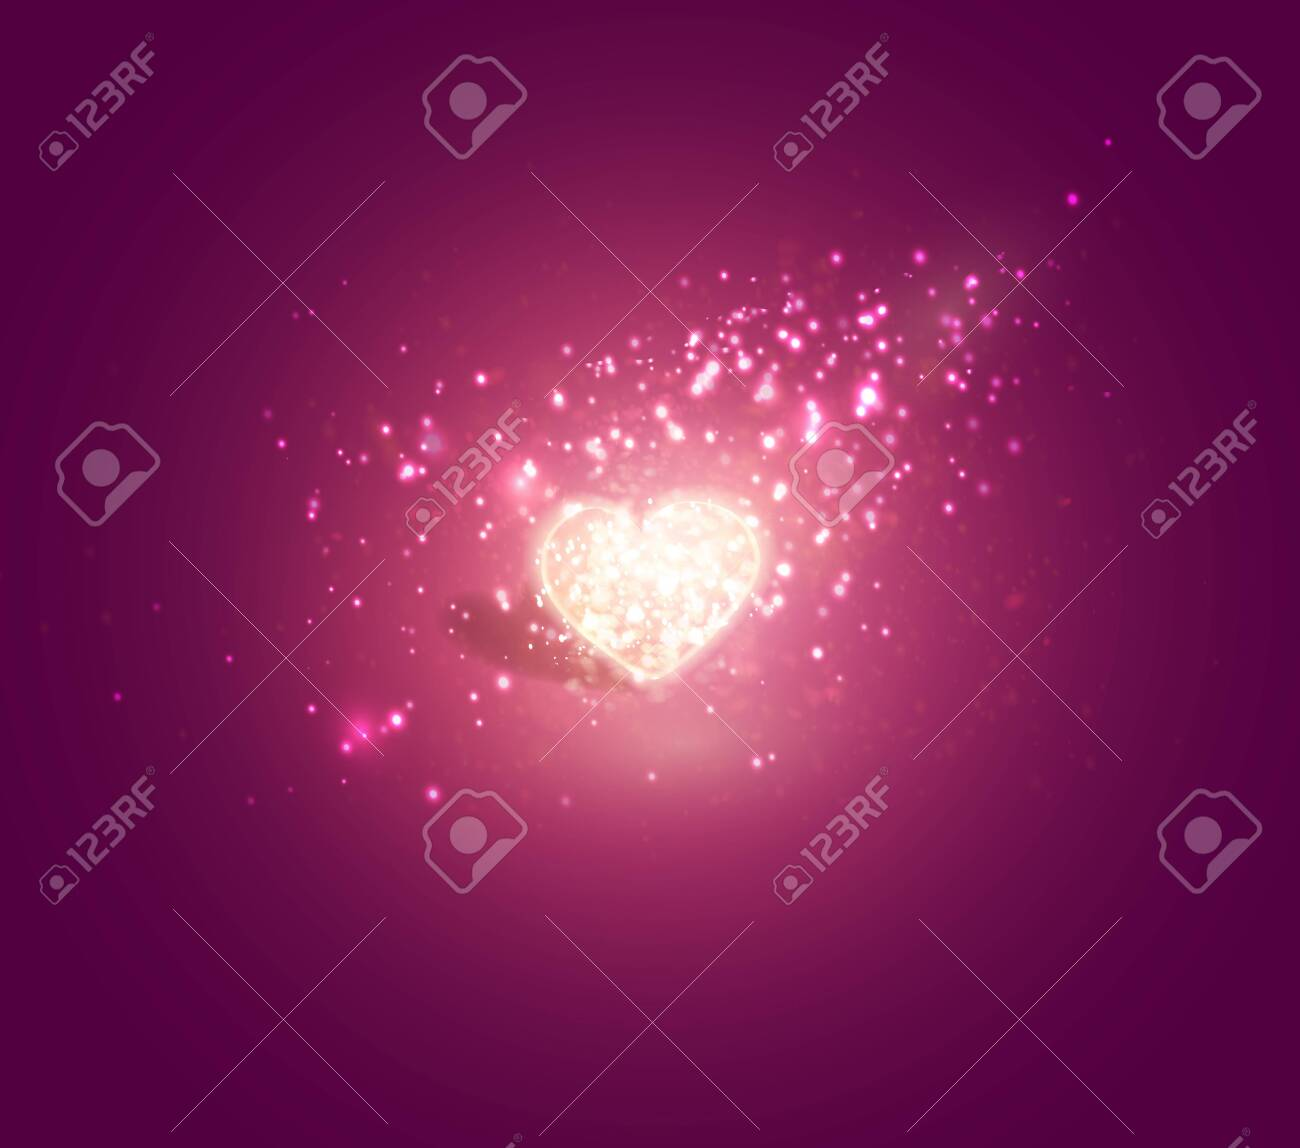 Shiny heart. Soft beautiful background for Valentines Day design vector. - 123029918